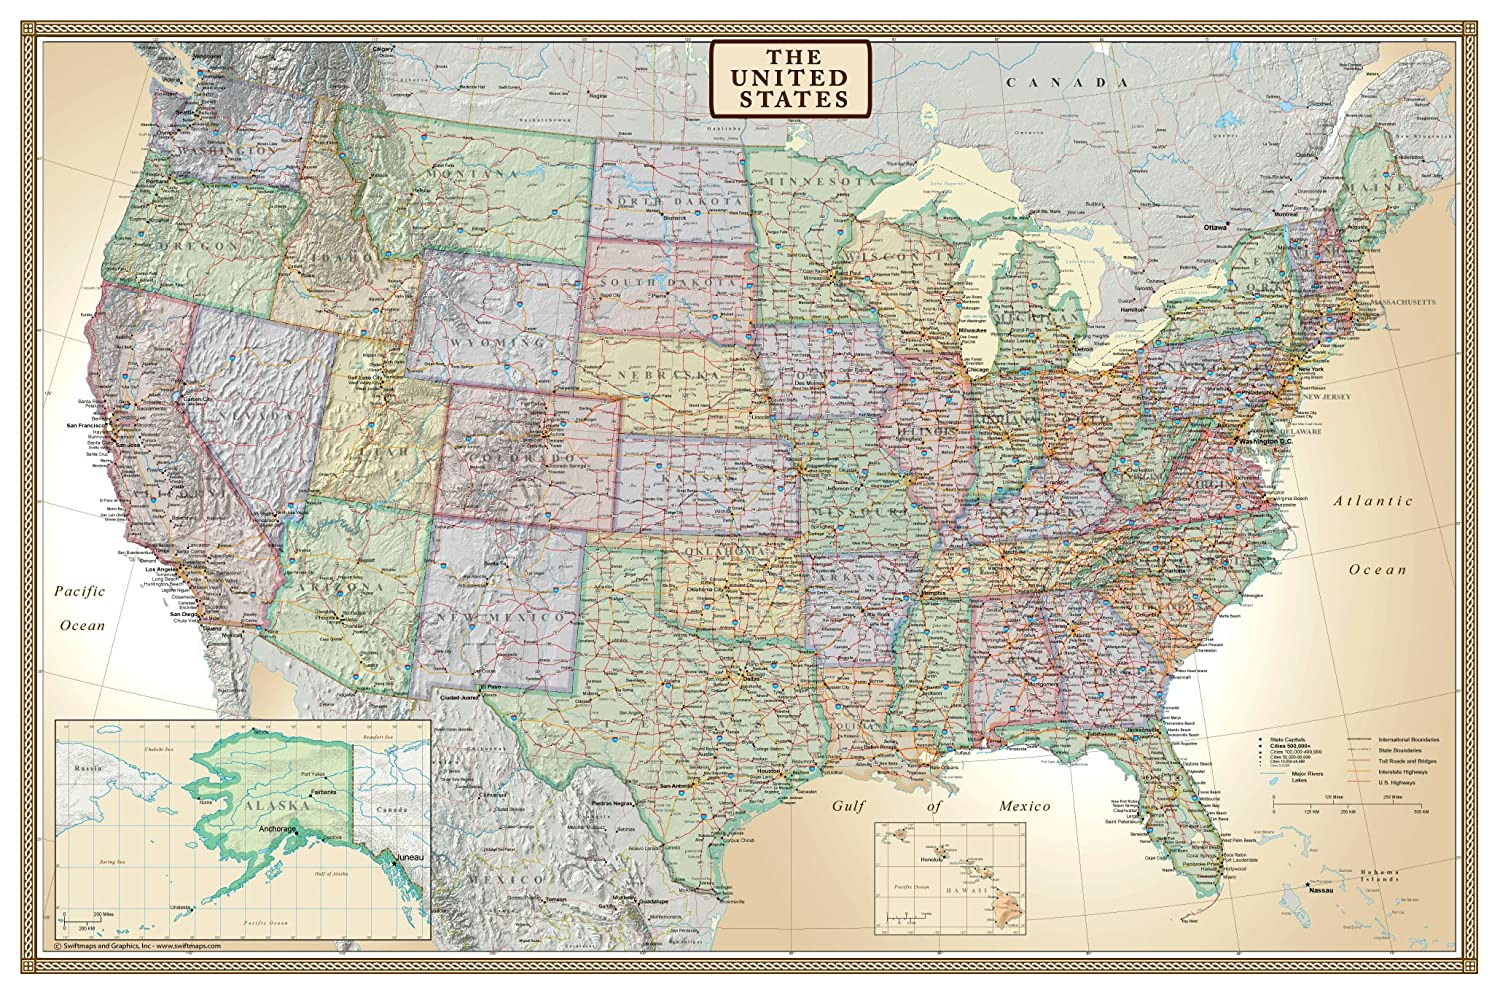 Amazoncom X United States USA US Executive Wall Map Poster - Us map and oceans